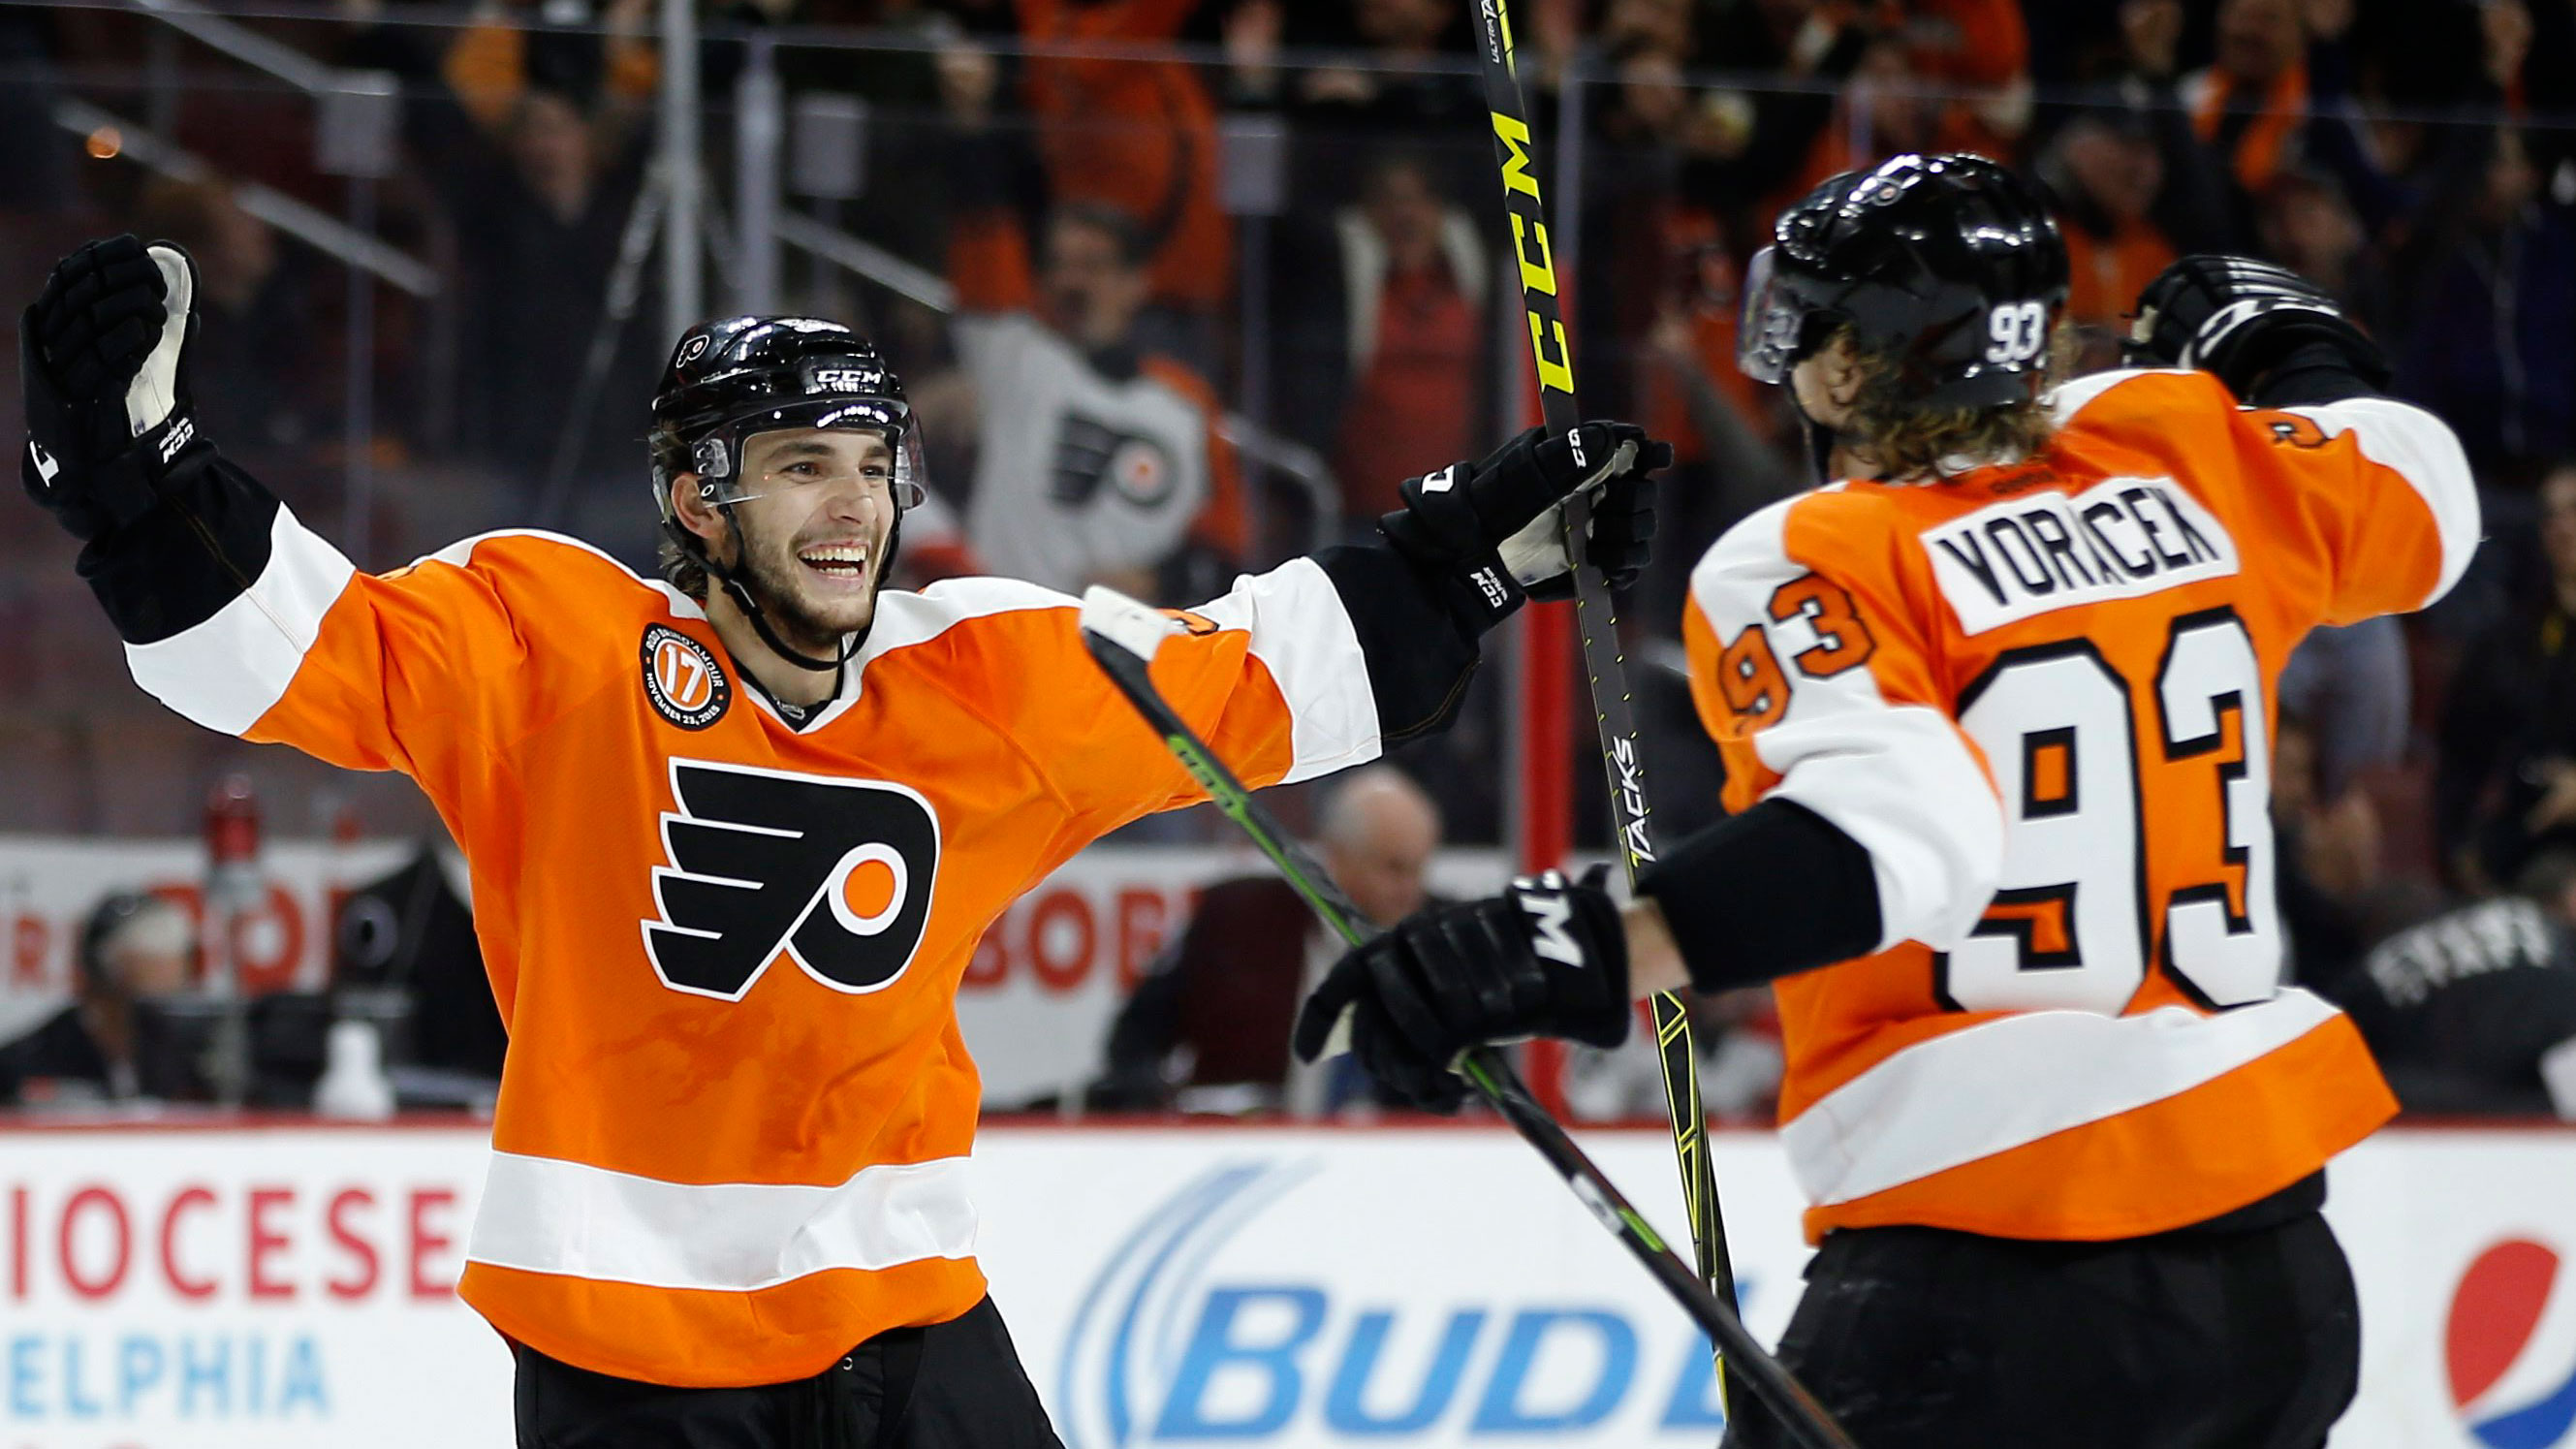 Five Things We Learned In The NHL: Gostisbehere's Hot Streak